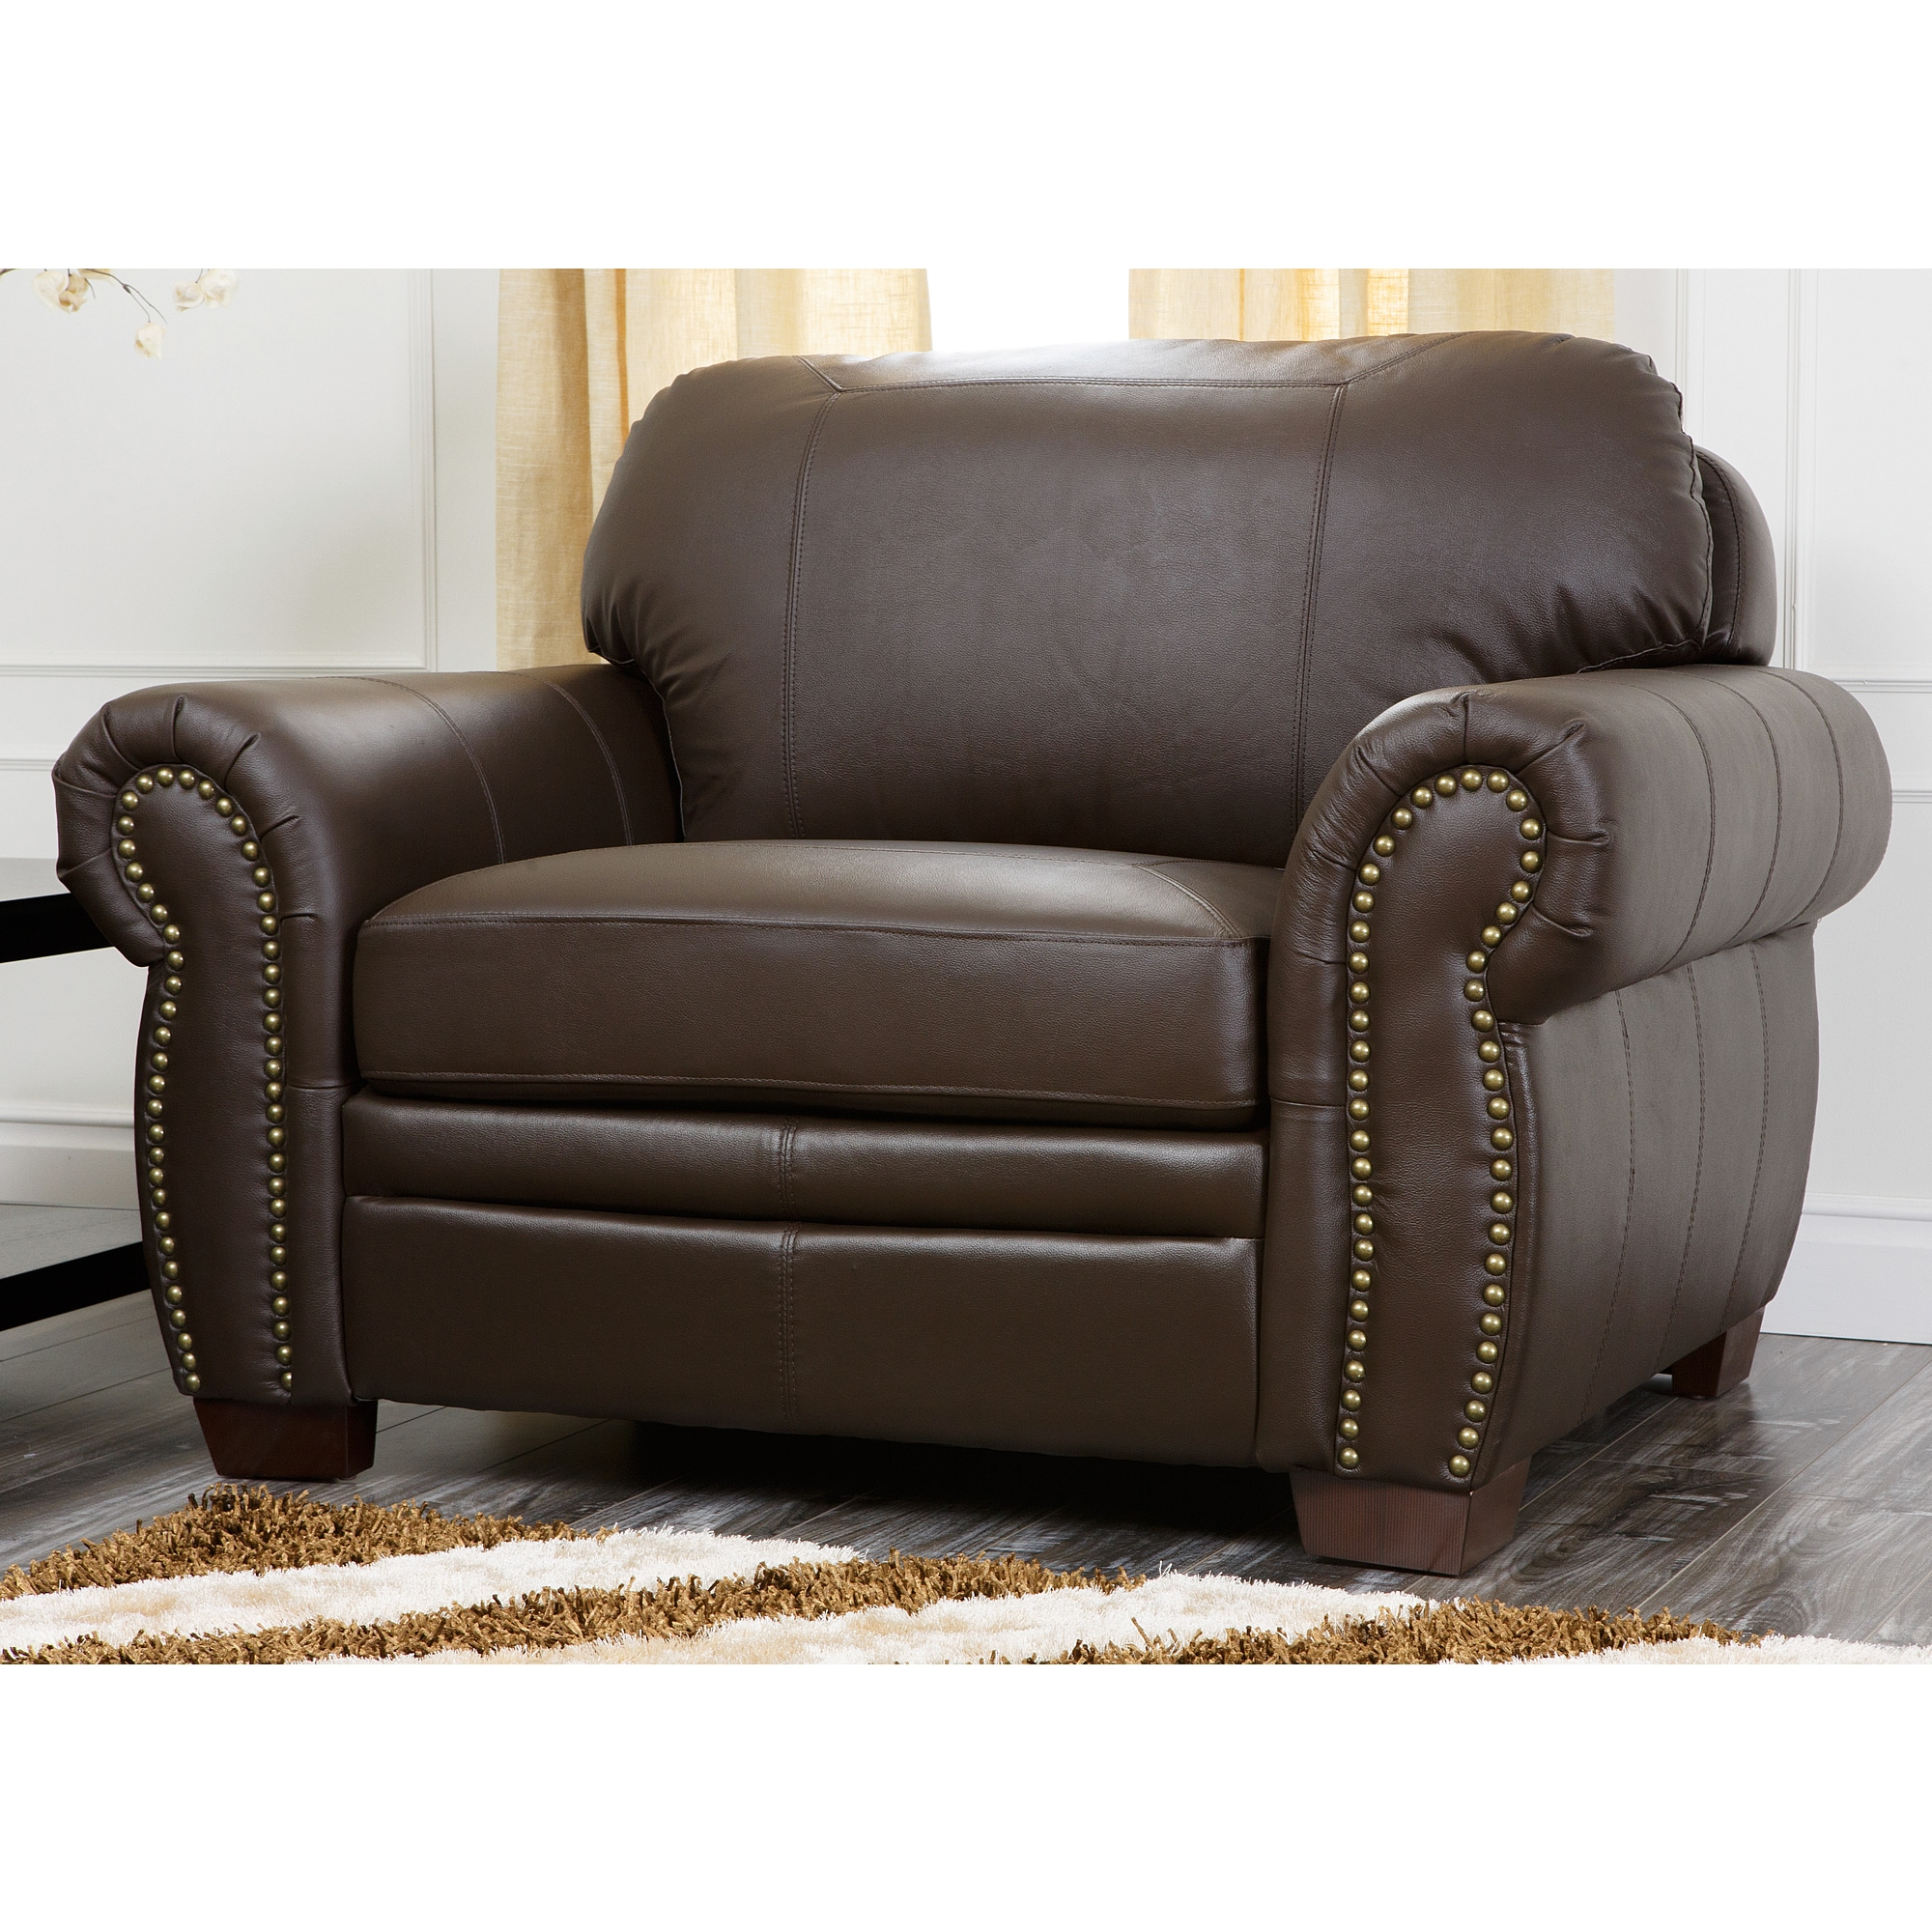 Abbyson living signature italian leather oversized chair for Oversized armchair